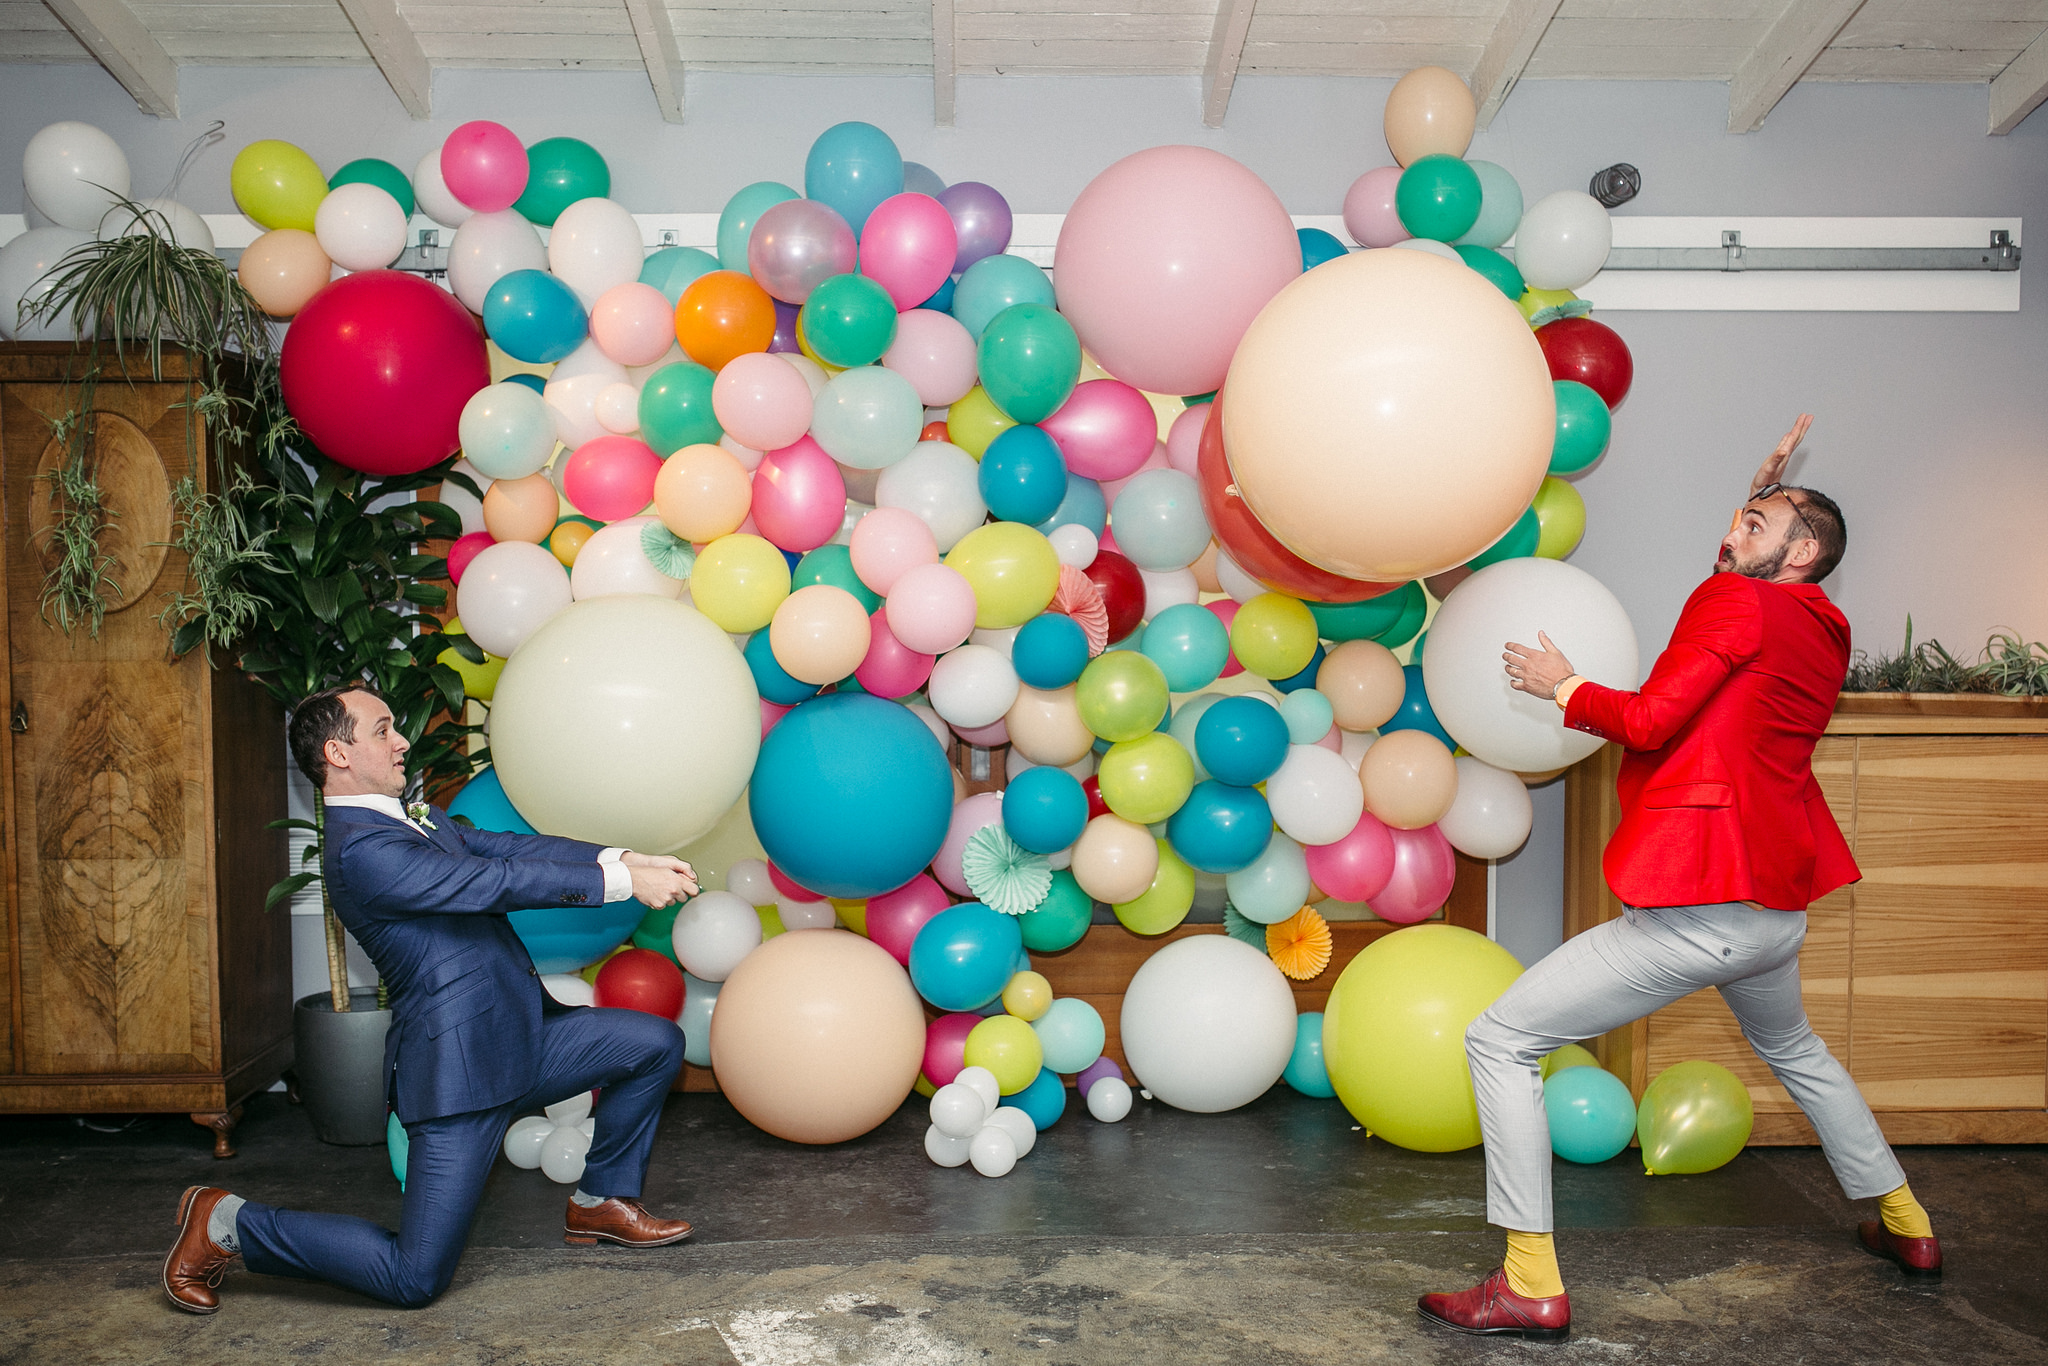 Two men in suits play with giant balloons in front of a colorful balloon installation